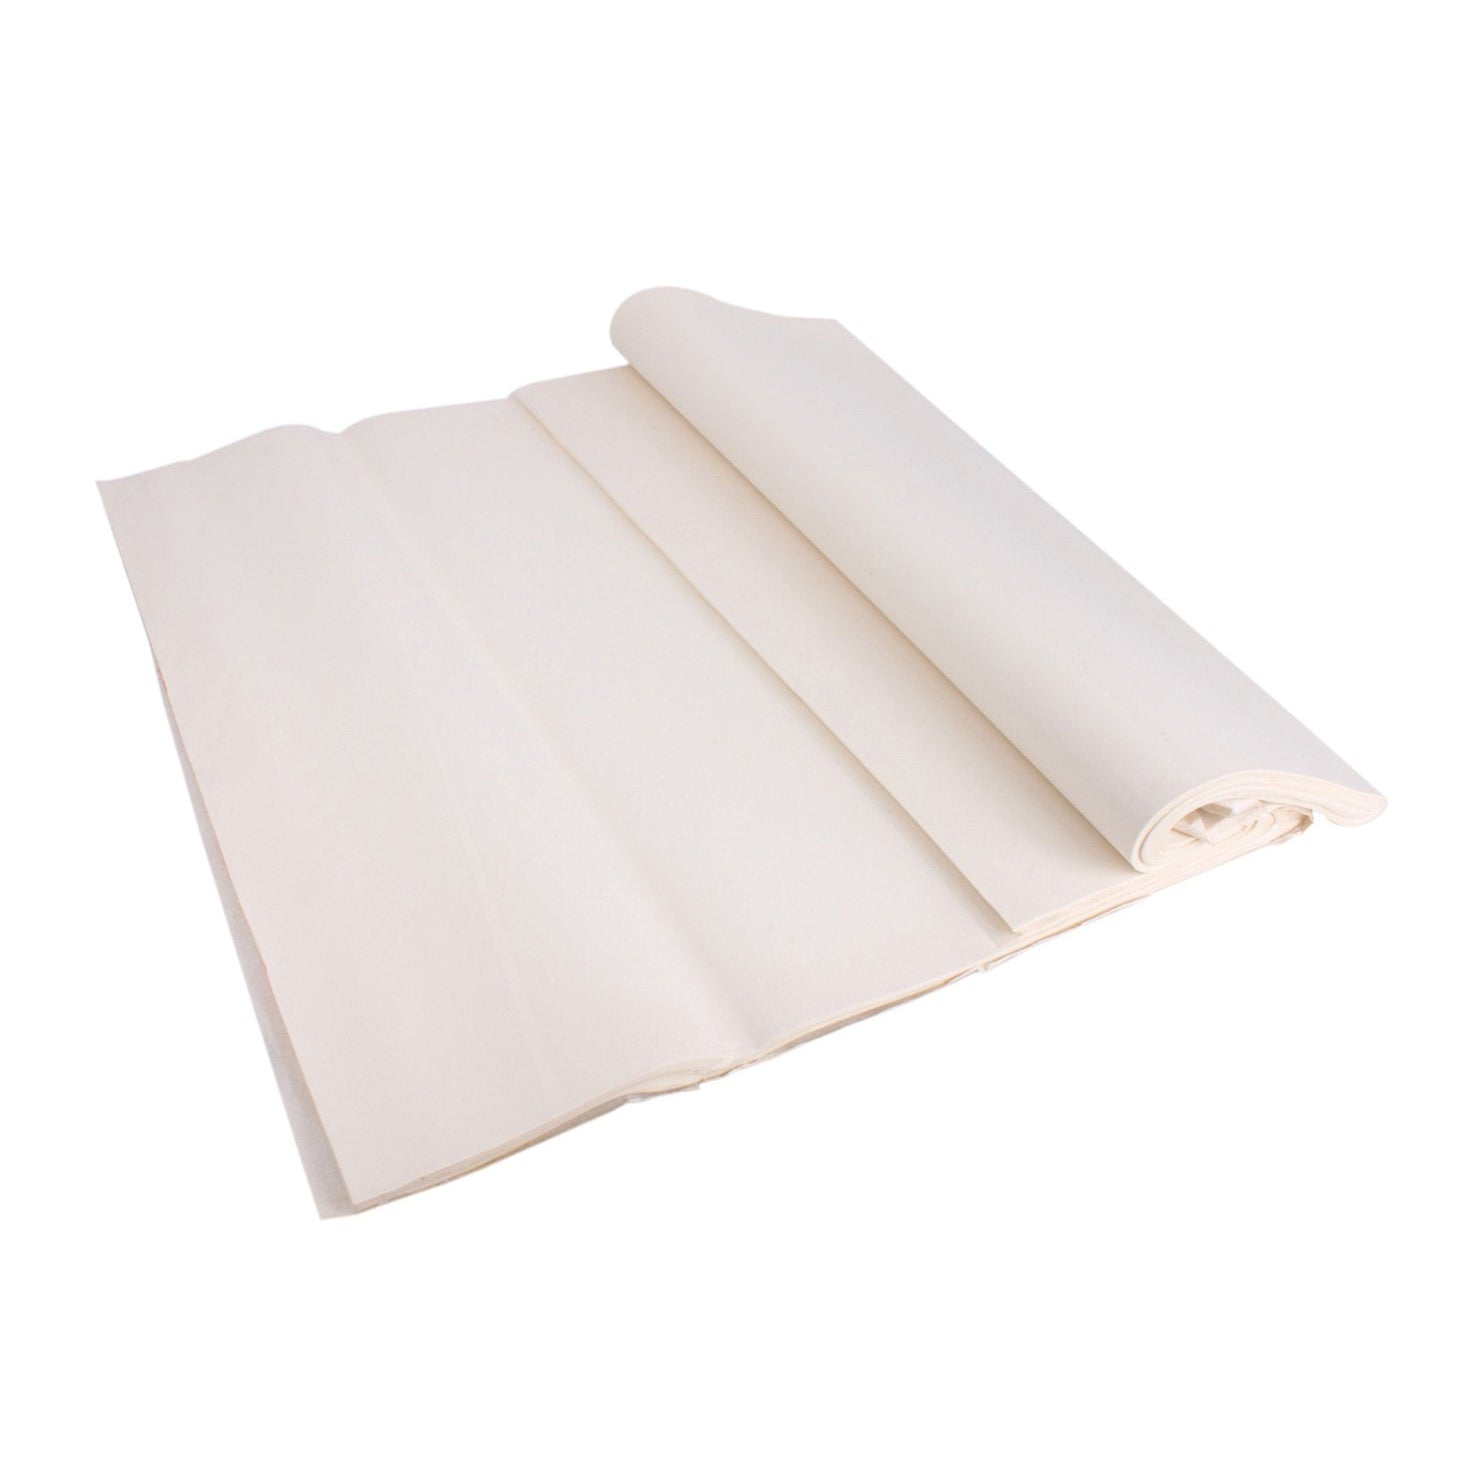 ALLROUNDER - Unsized Single Shuen Paper (Xuan Paper)